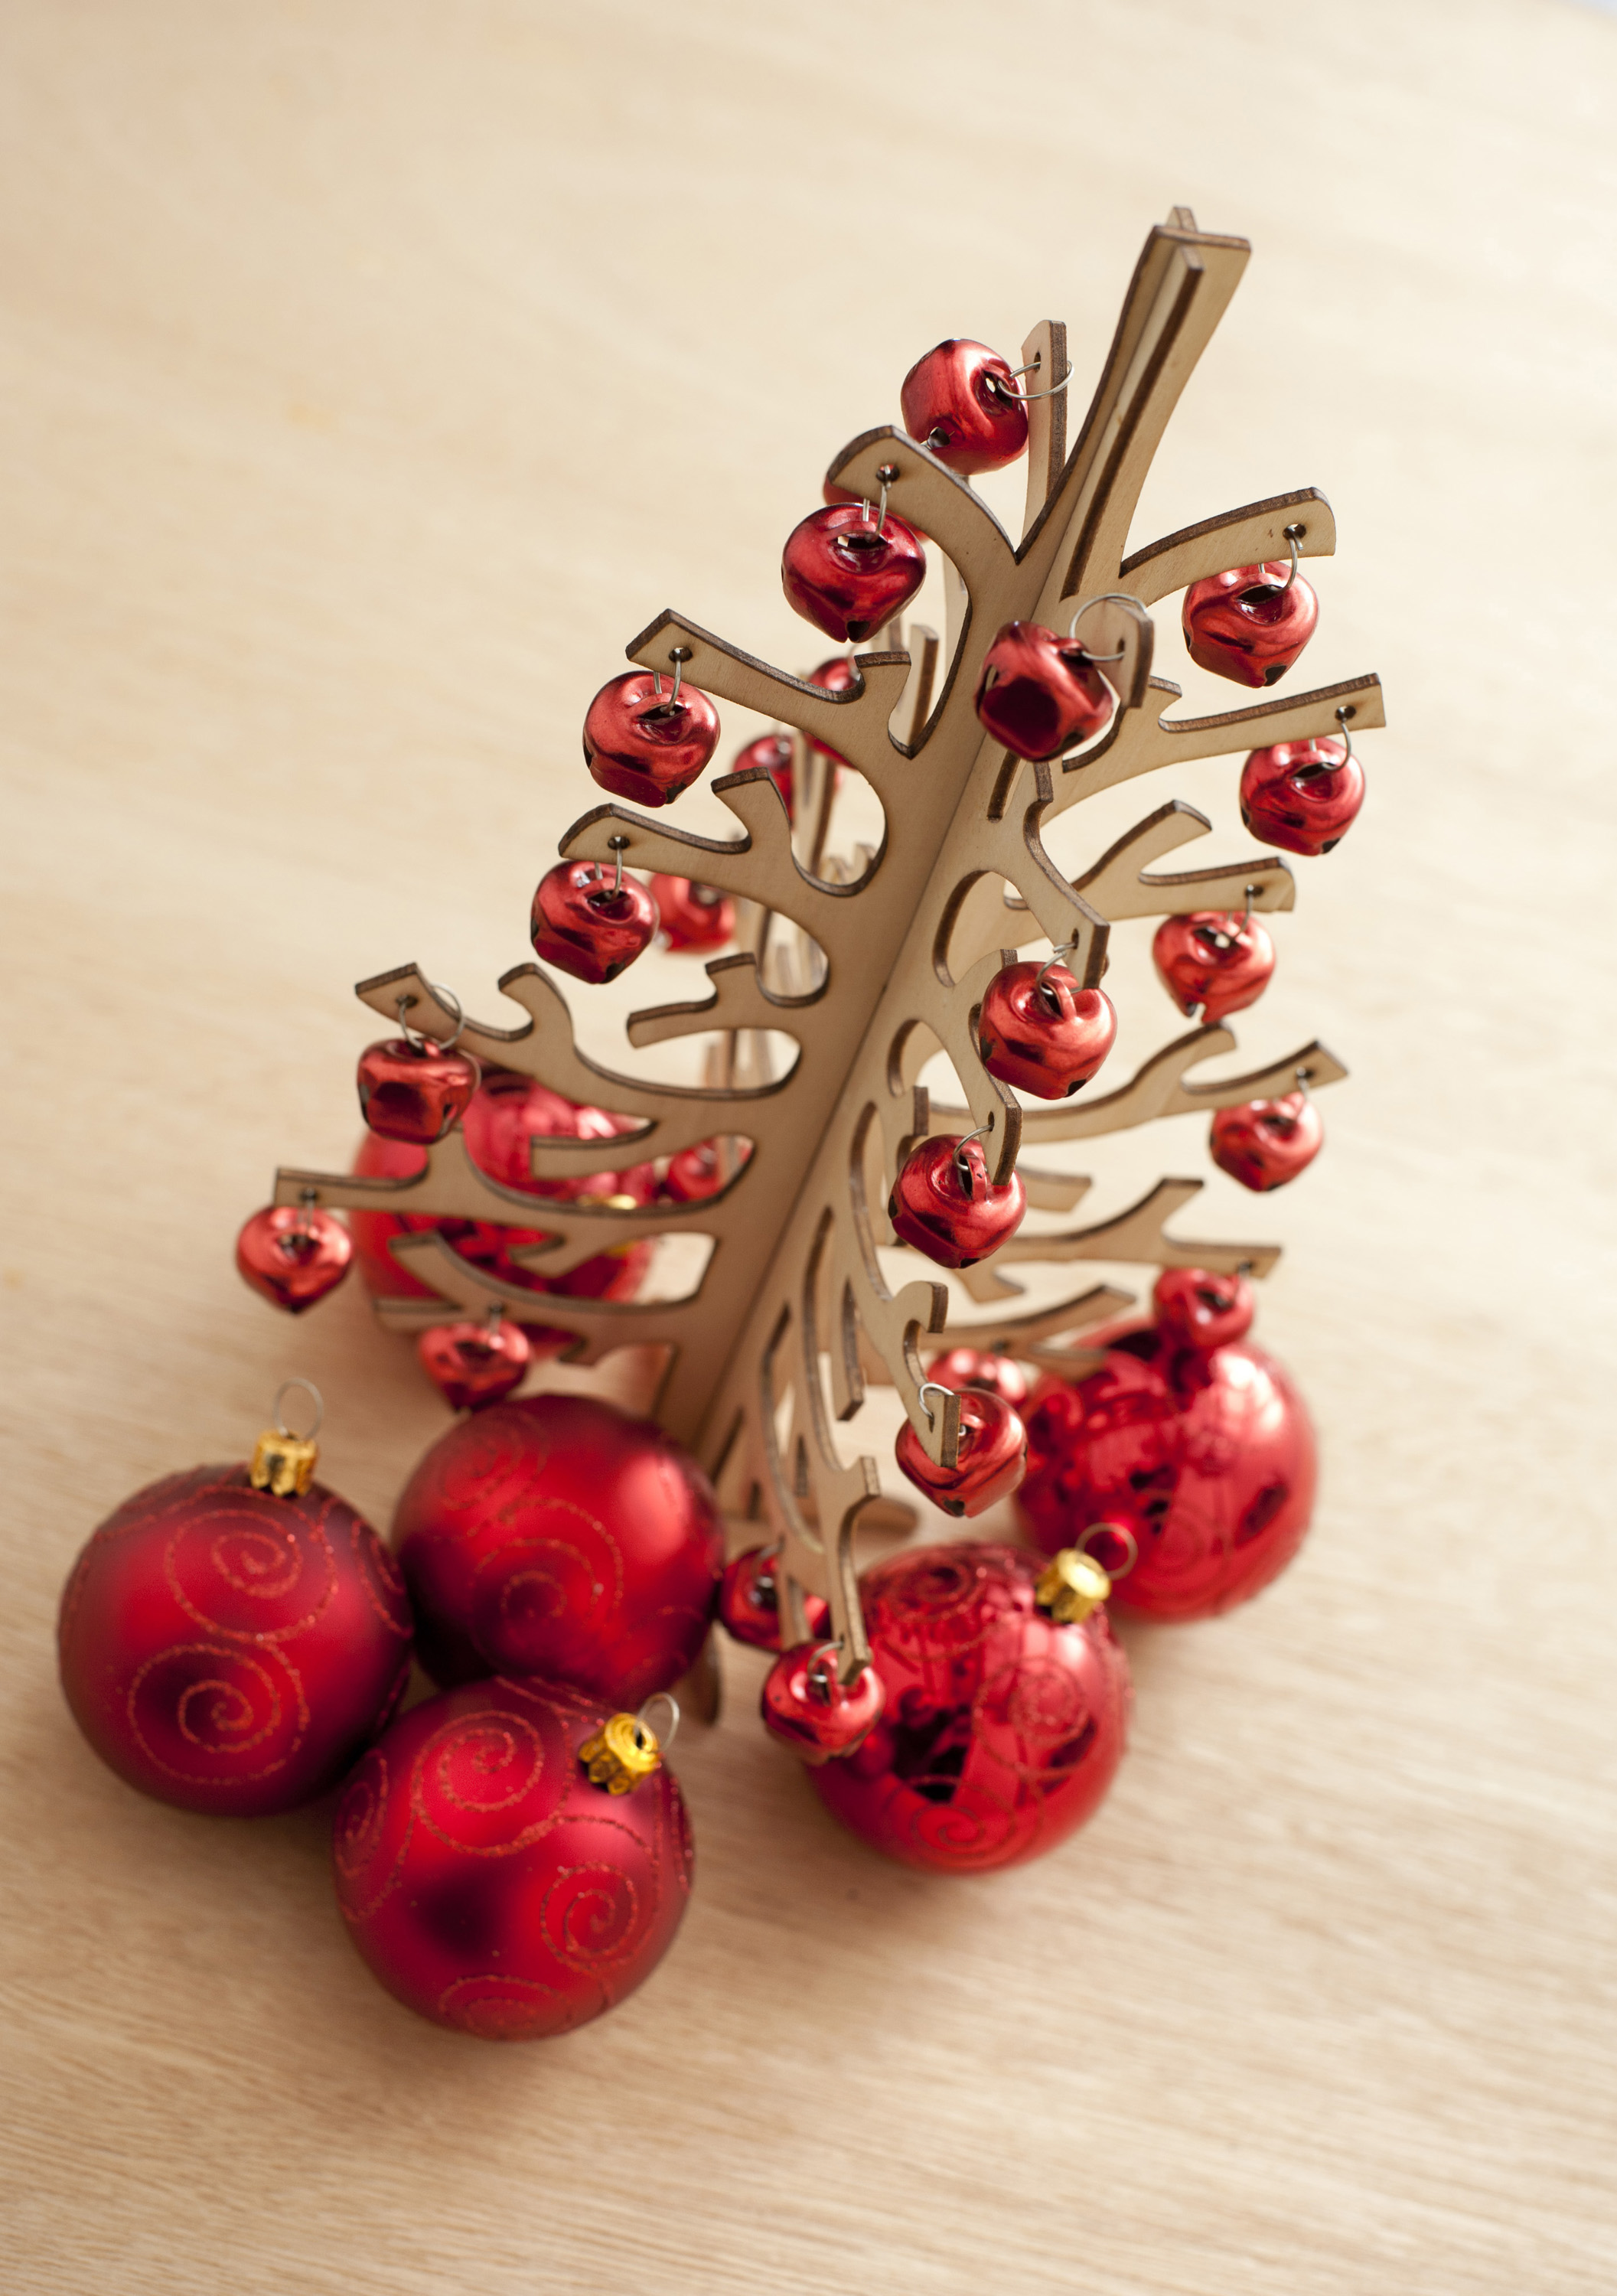 Close-up of wooden Christmas tree decorated with red balls.